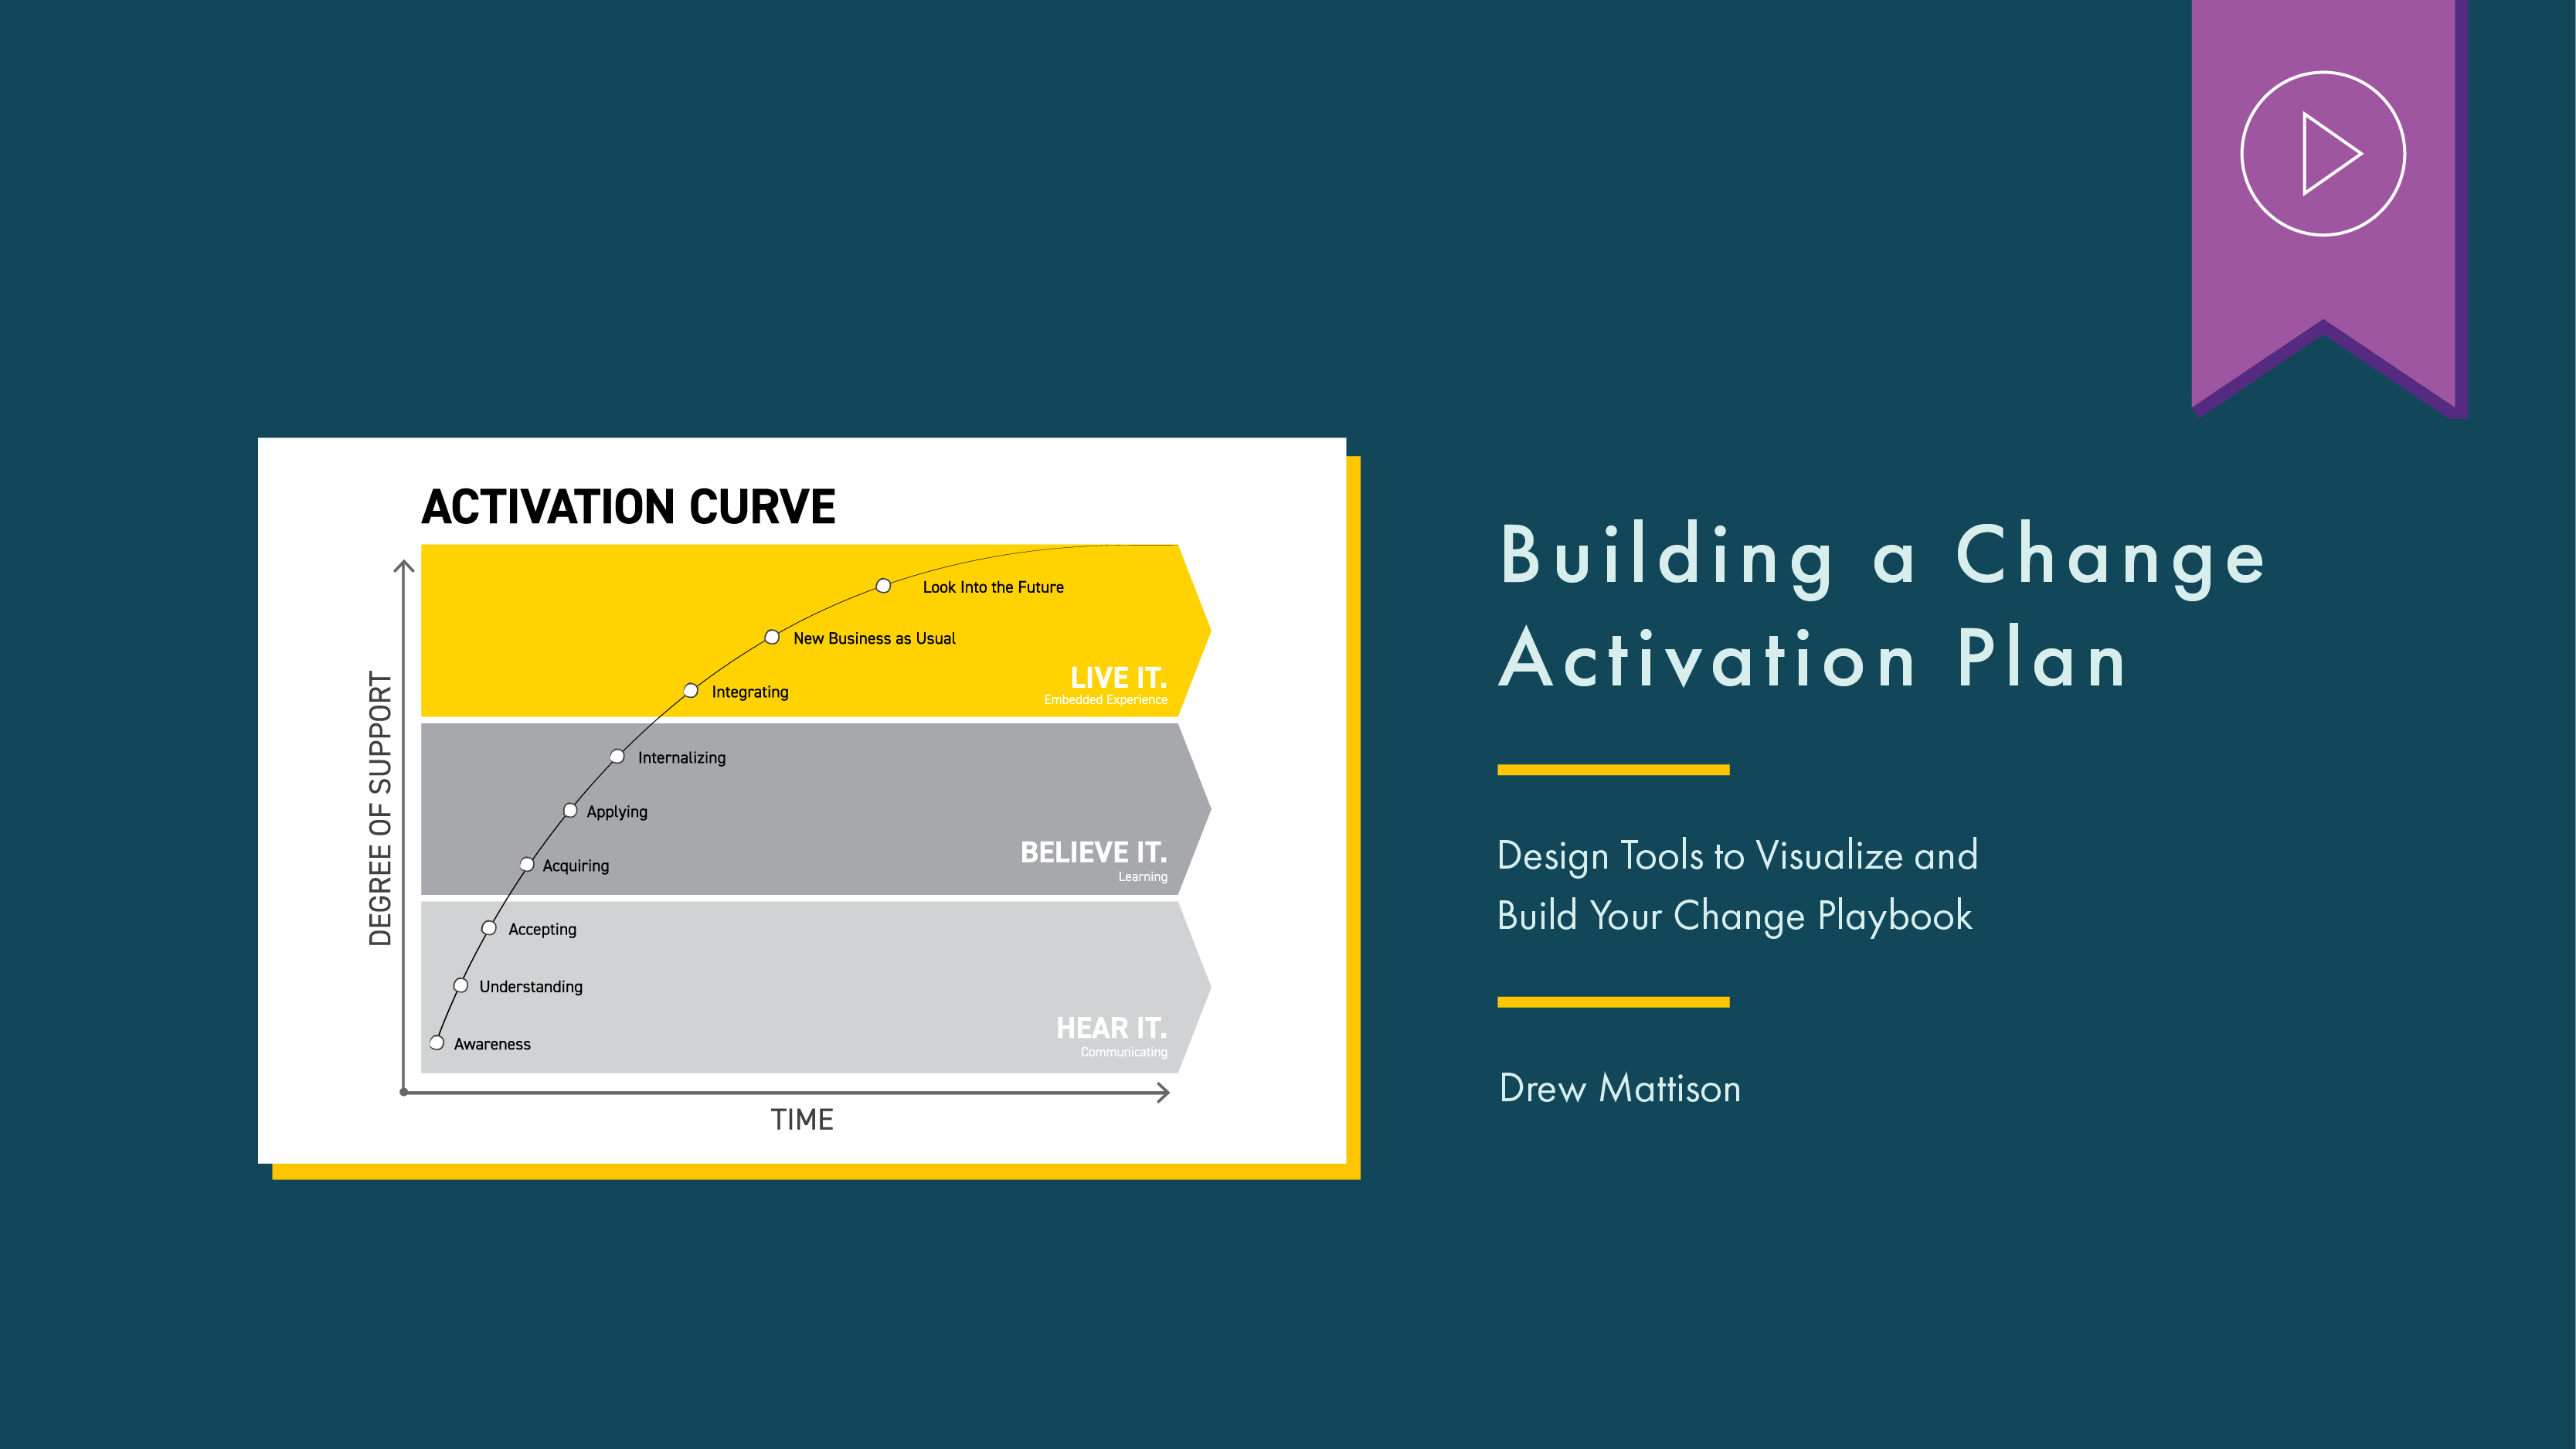 Header image showing activation curve graphic. Text outlines event information